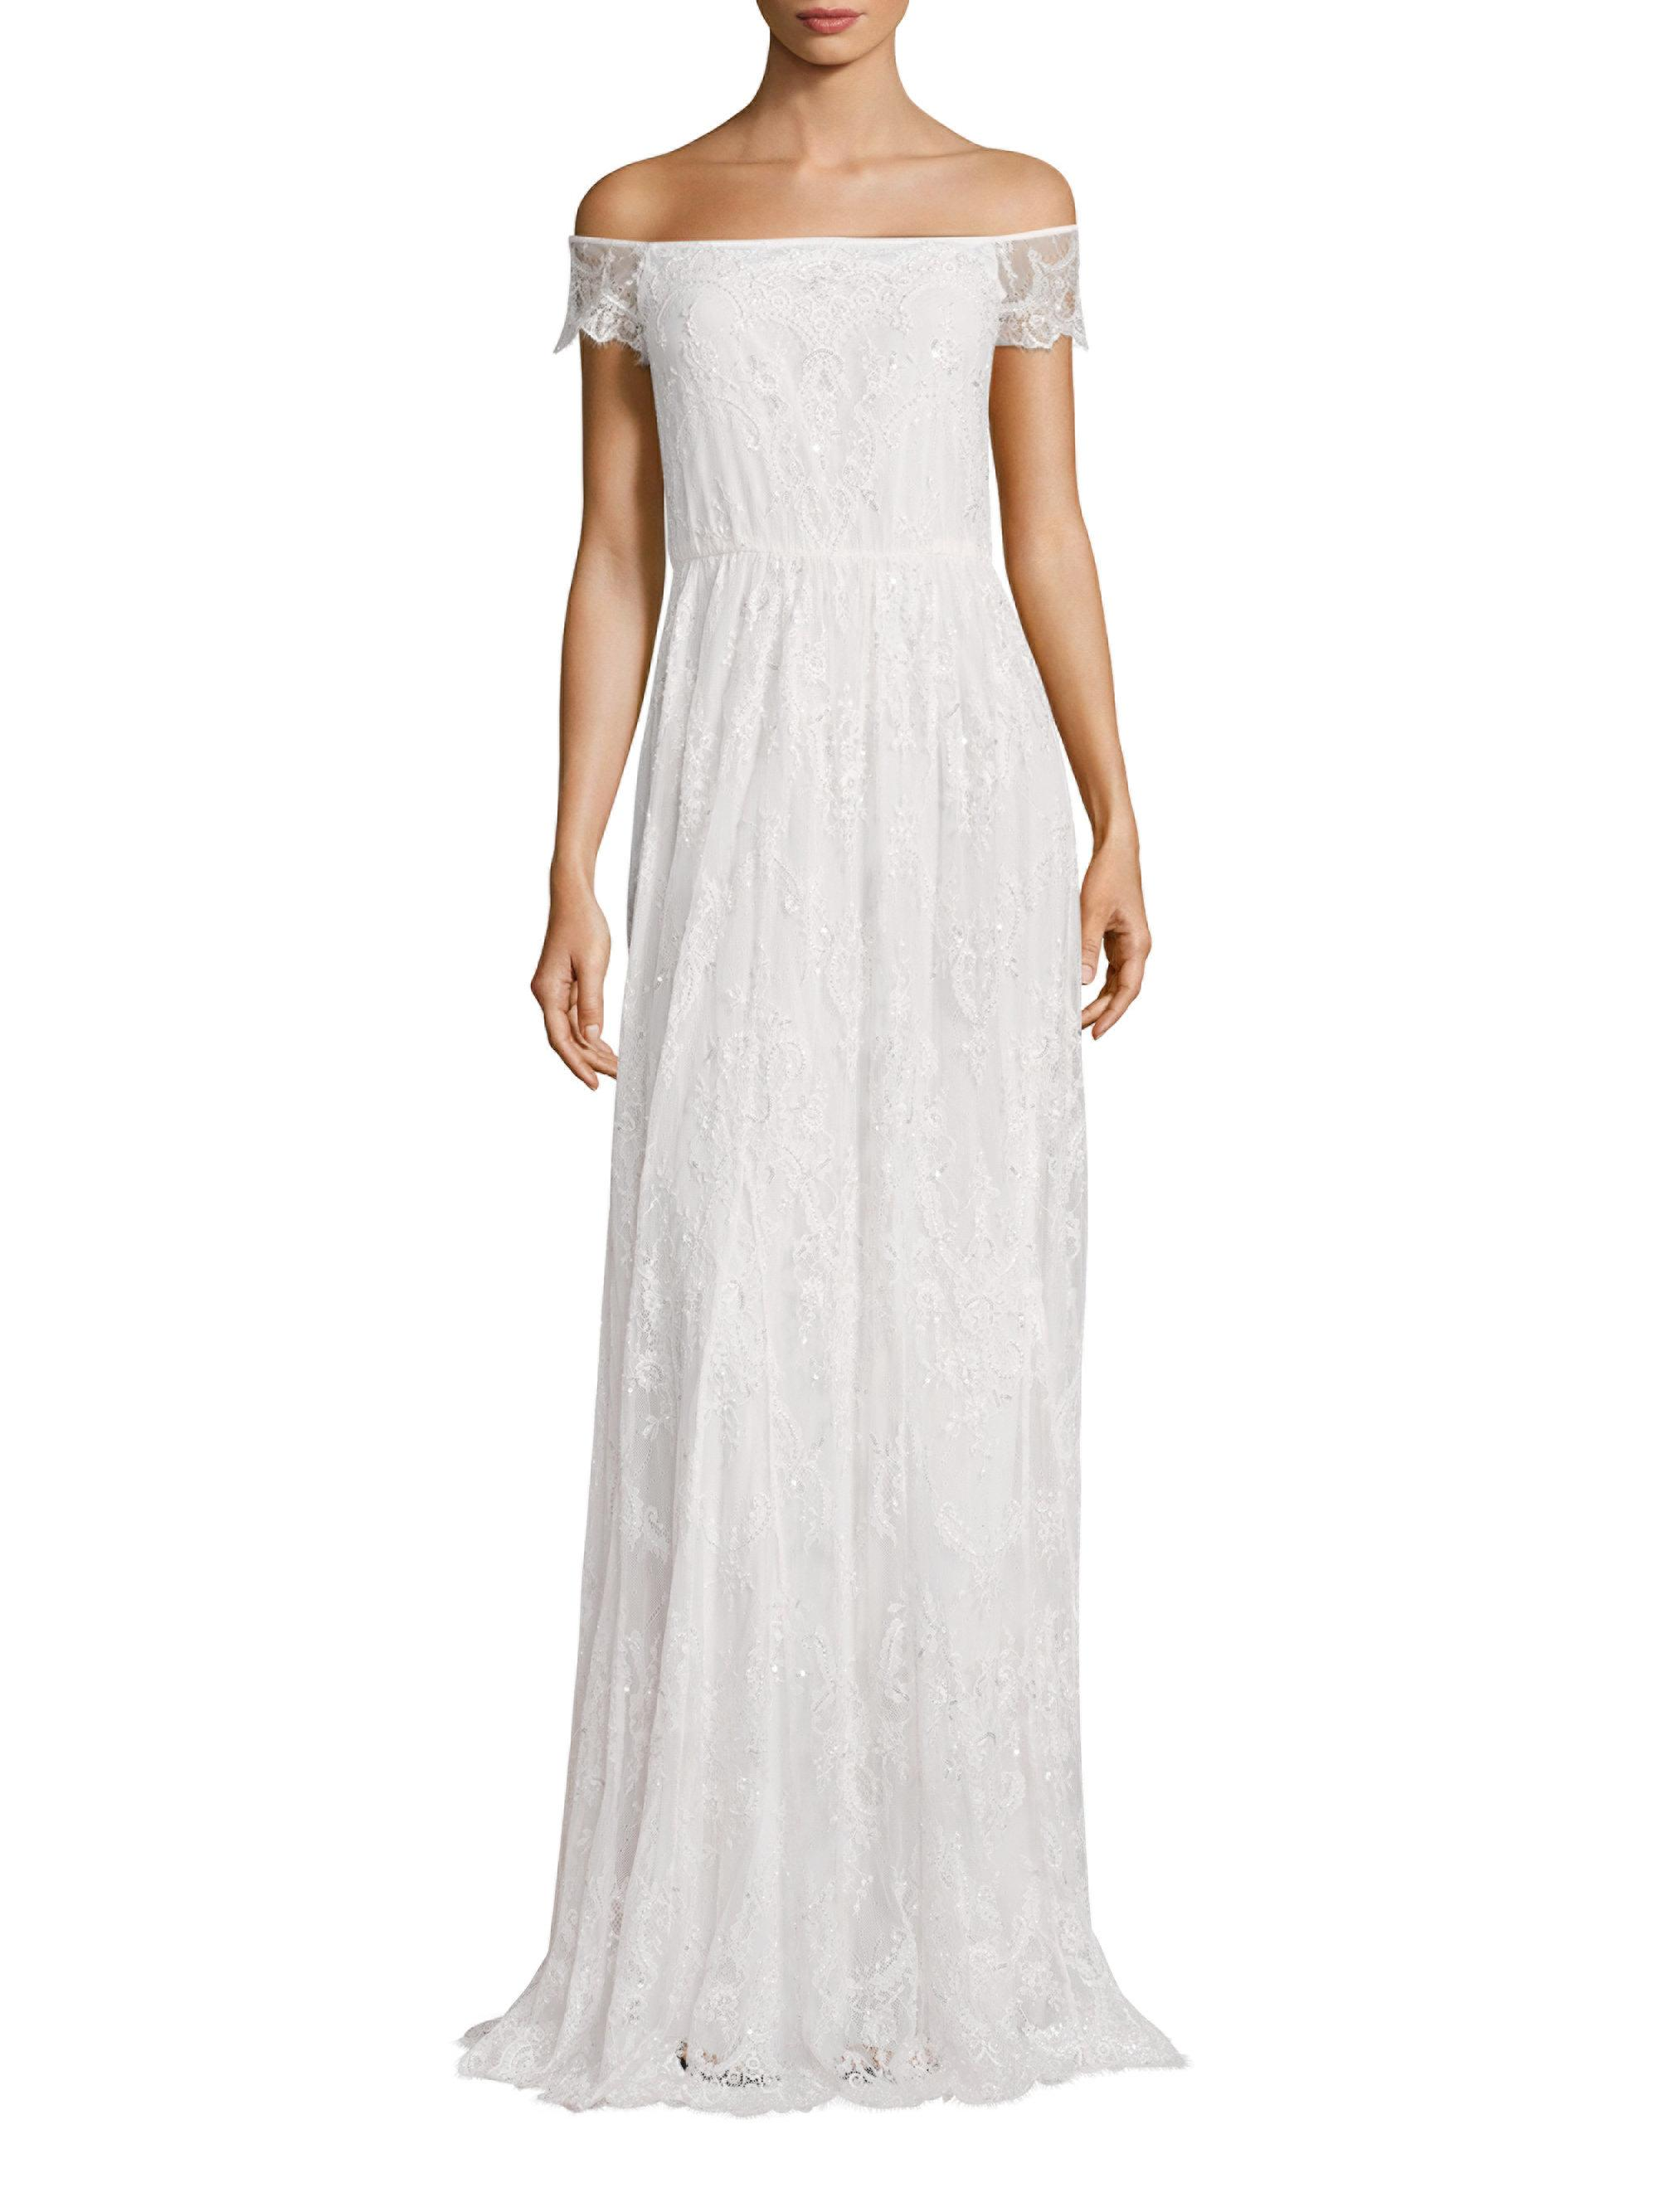 Where to buy a wedding dress racked for Saks fifth avenue wedding guest dresses